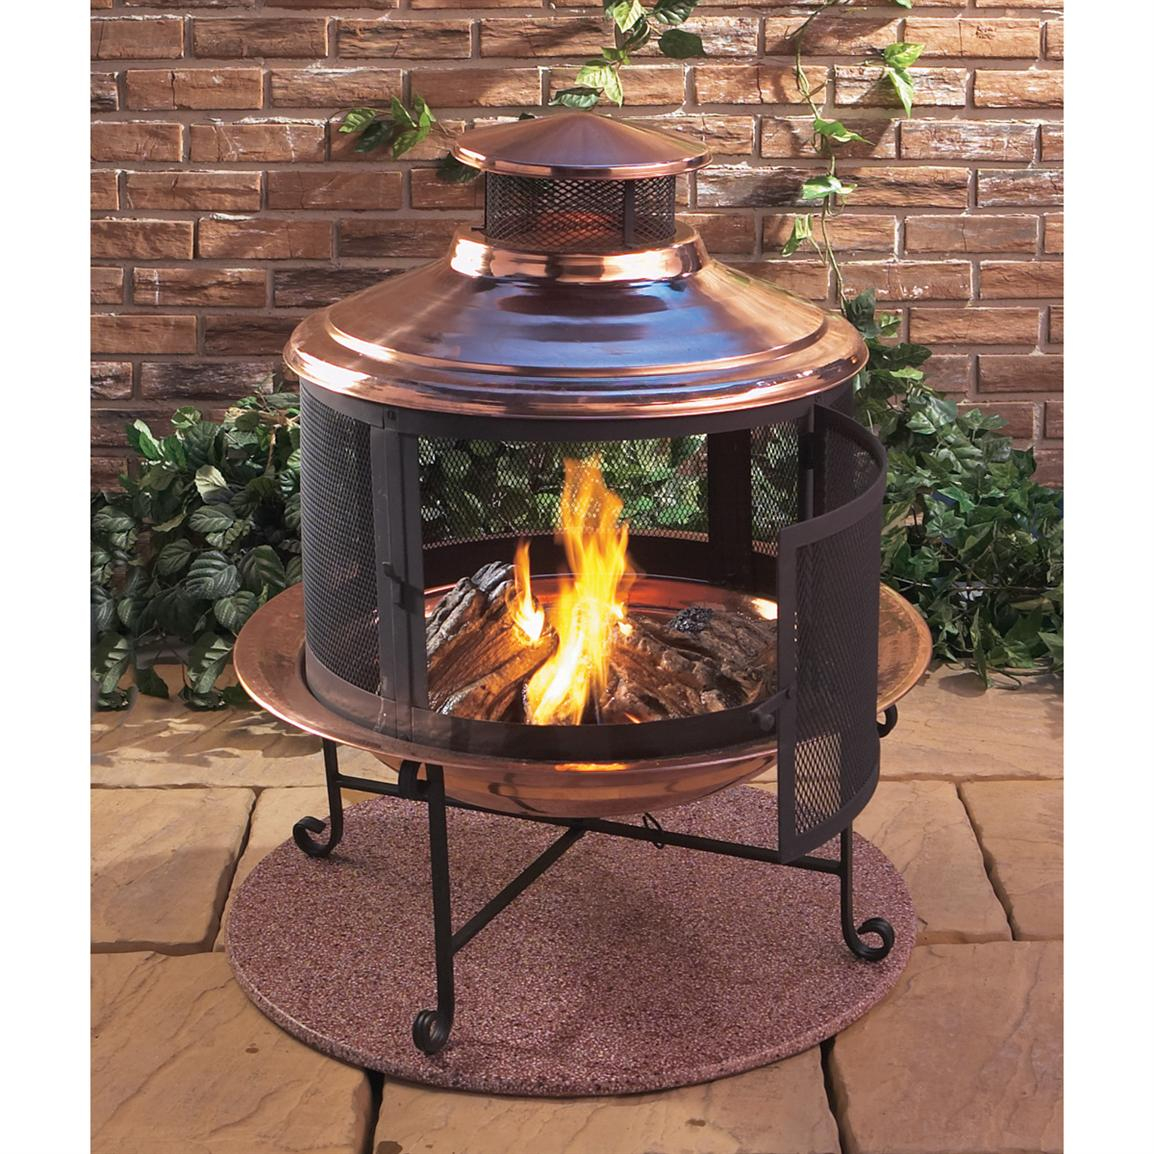 Fire Pit Chiminea The Latest Home Decor Ideas in measurements 1154 X 1154